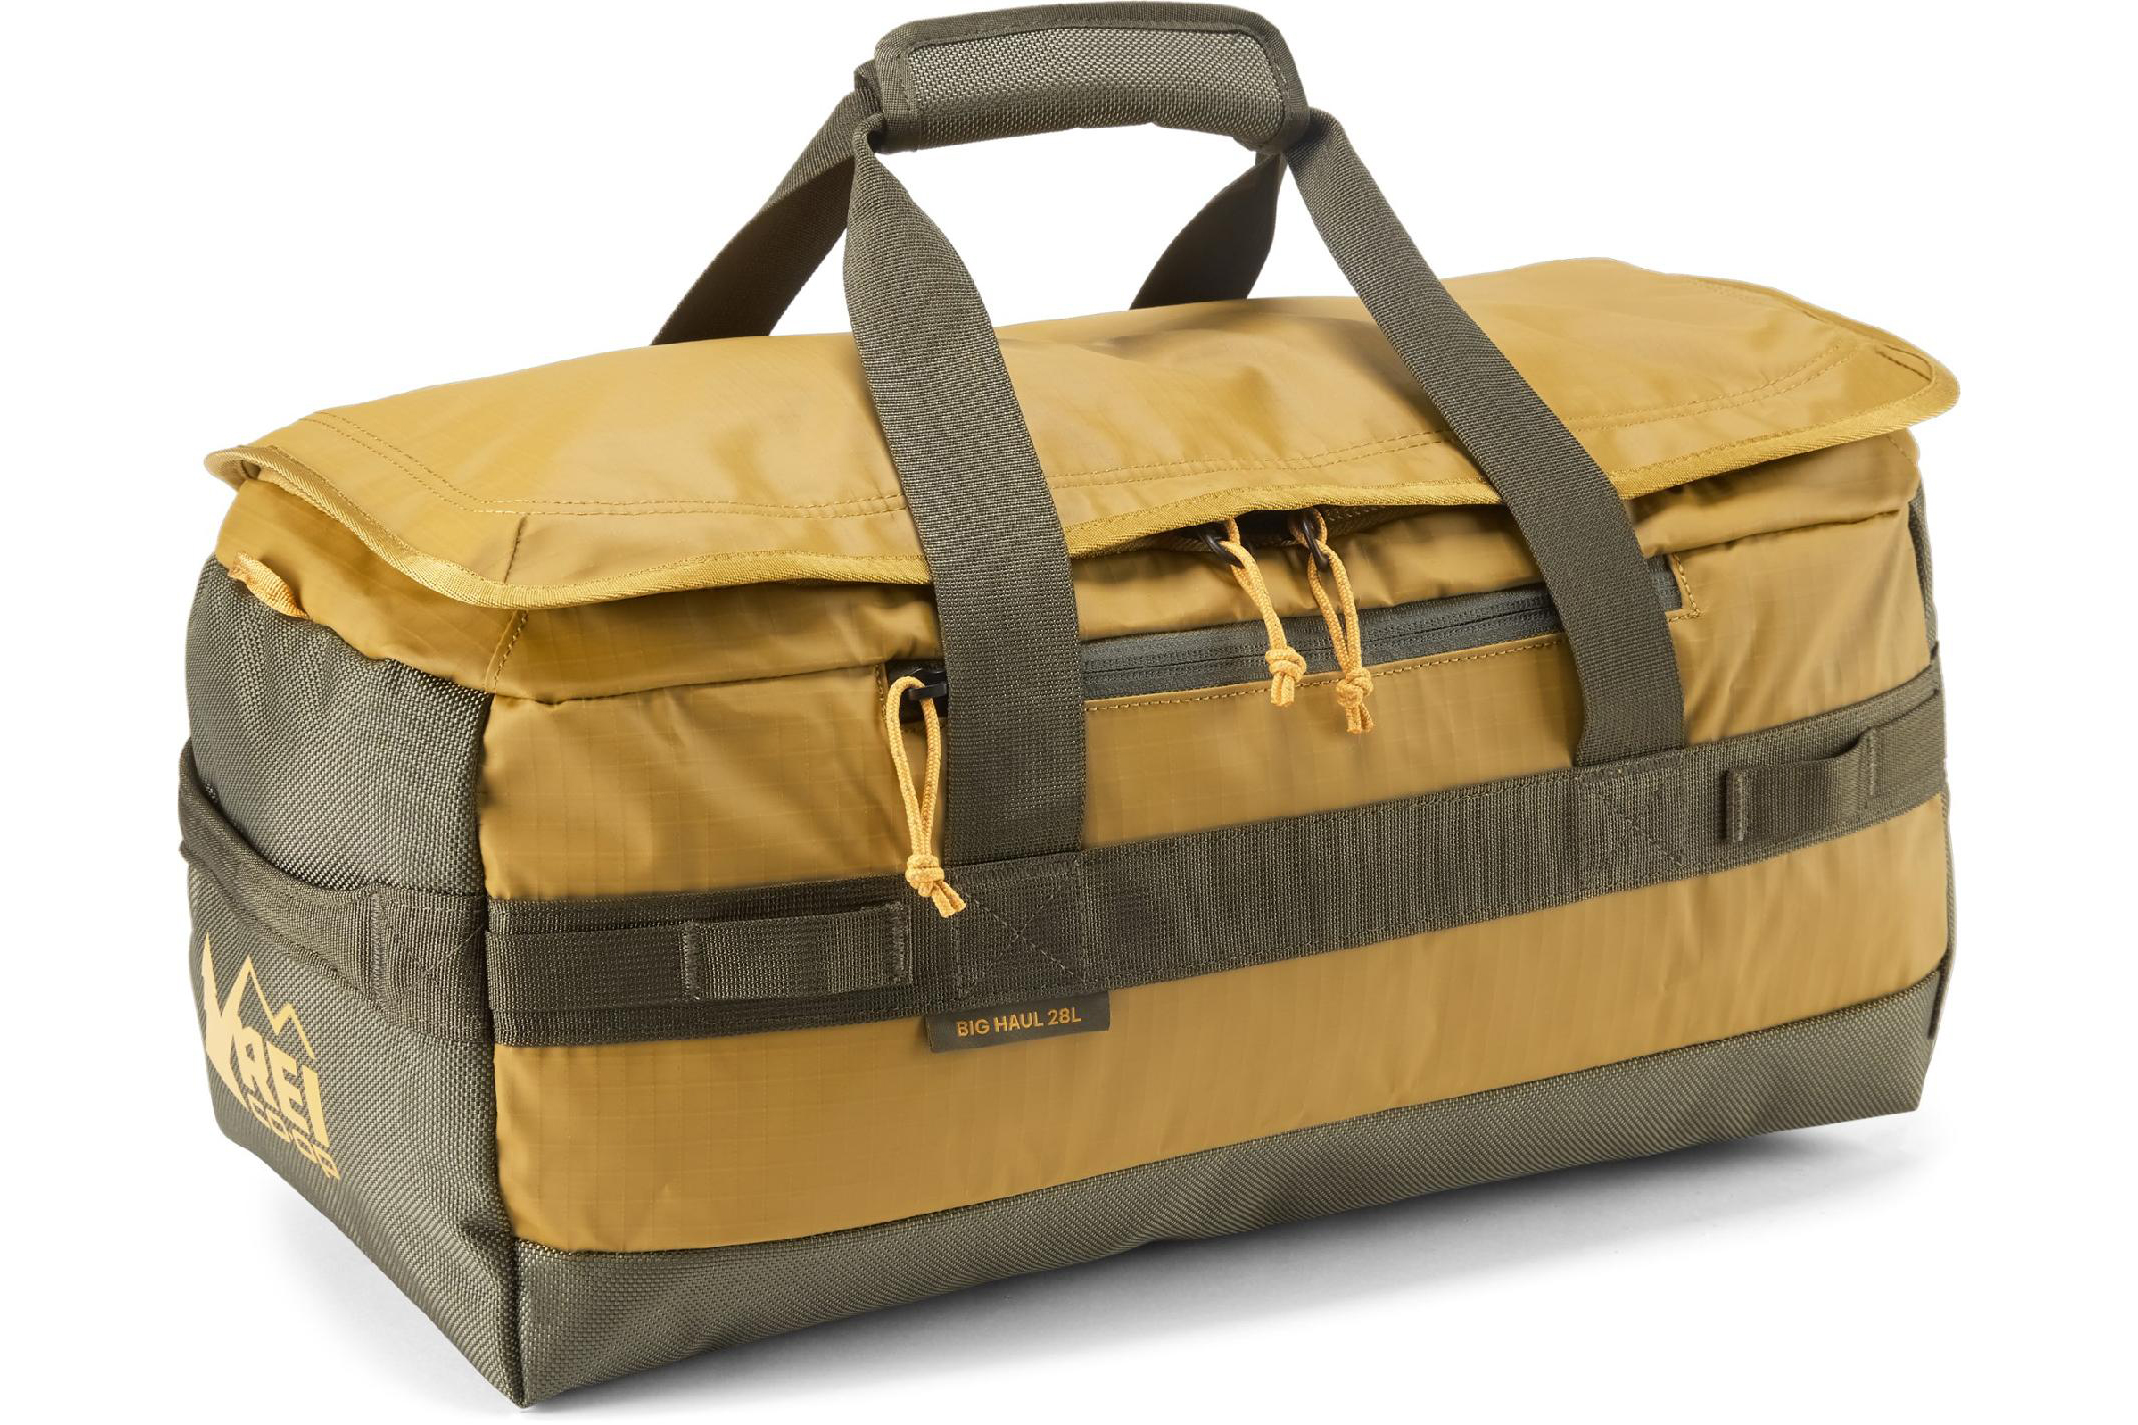 REI Co-op Long Haul 28 duffel